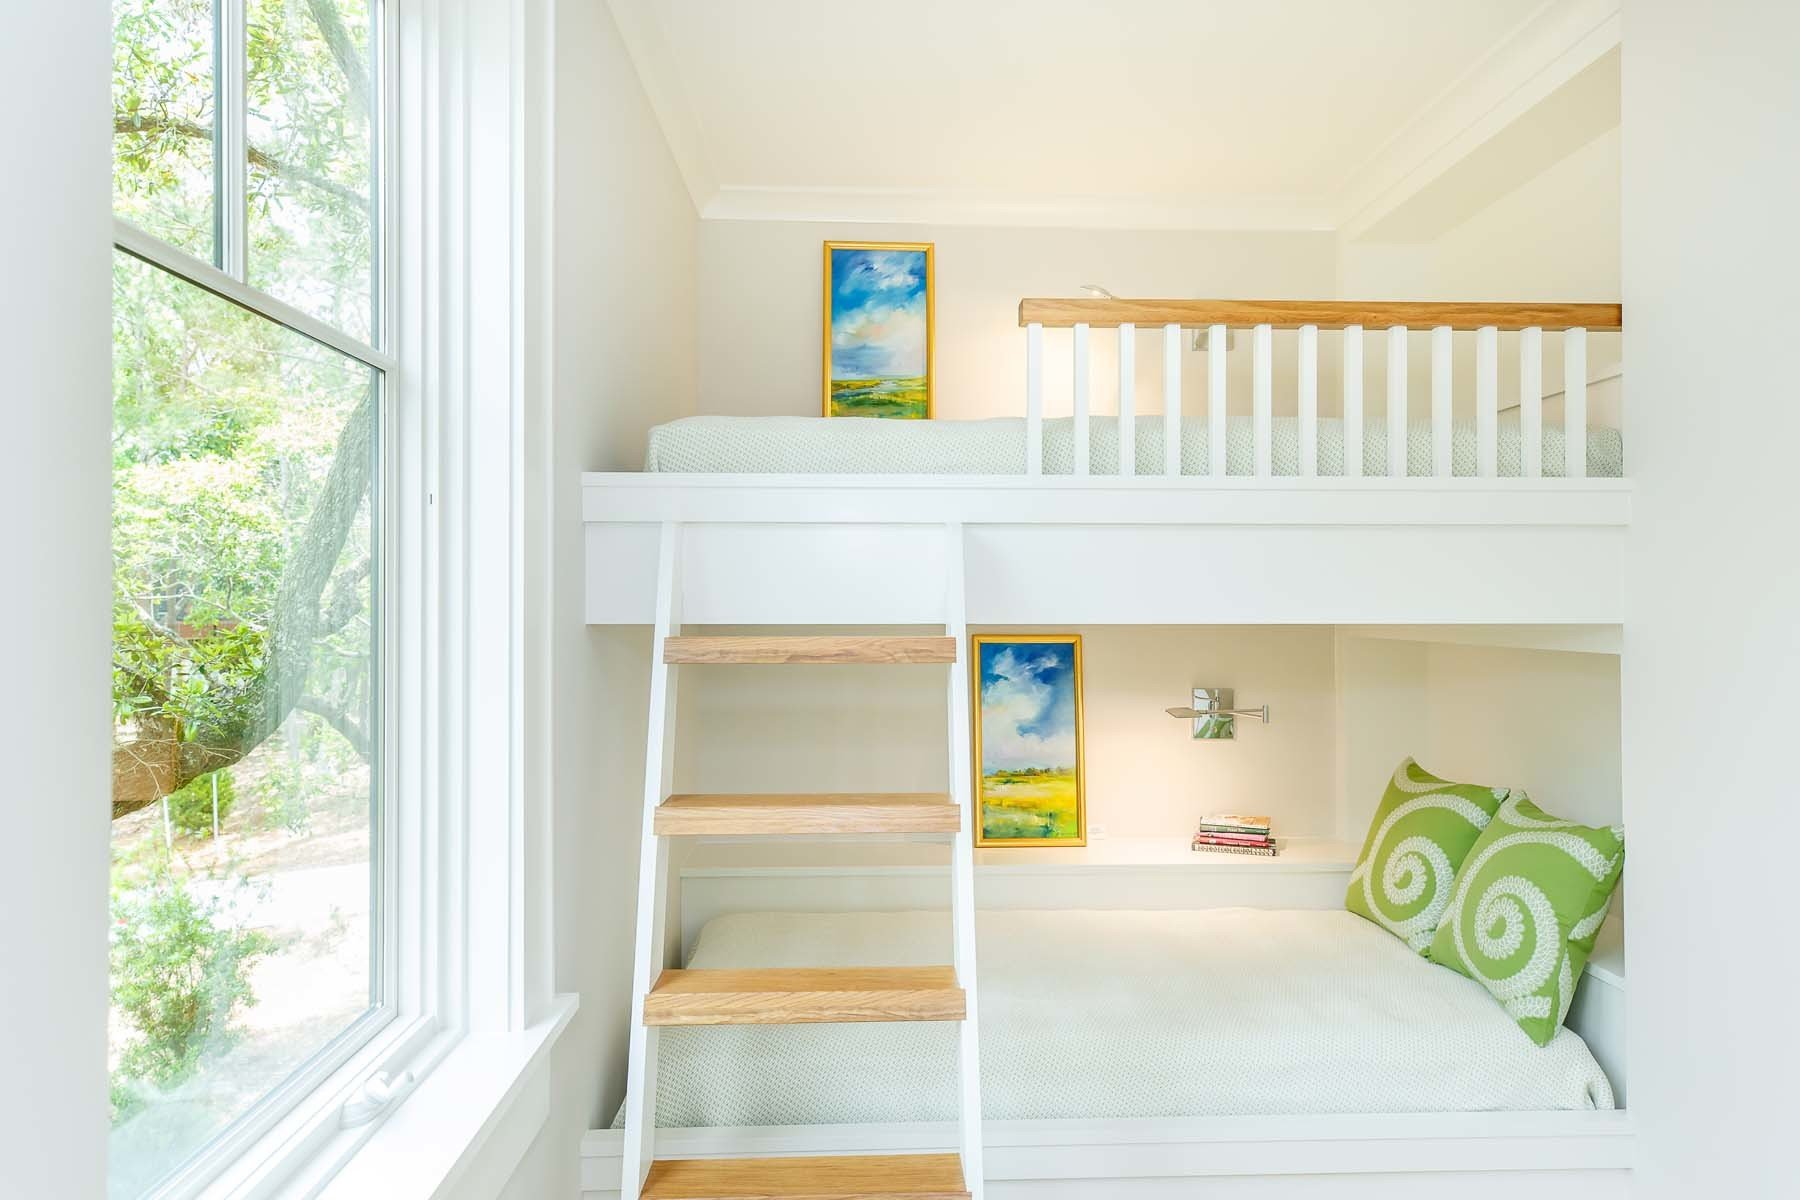 Farmhouse children's bedroom with permanent bunk beds painted pure bright white Chantilly Lace by Benjamin Moore.